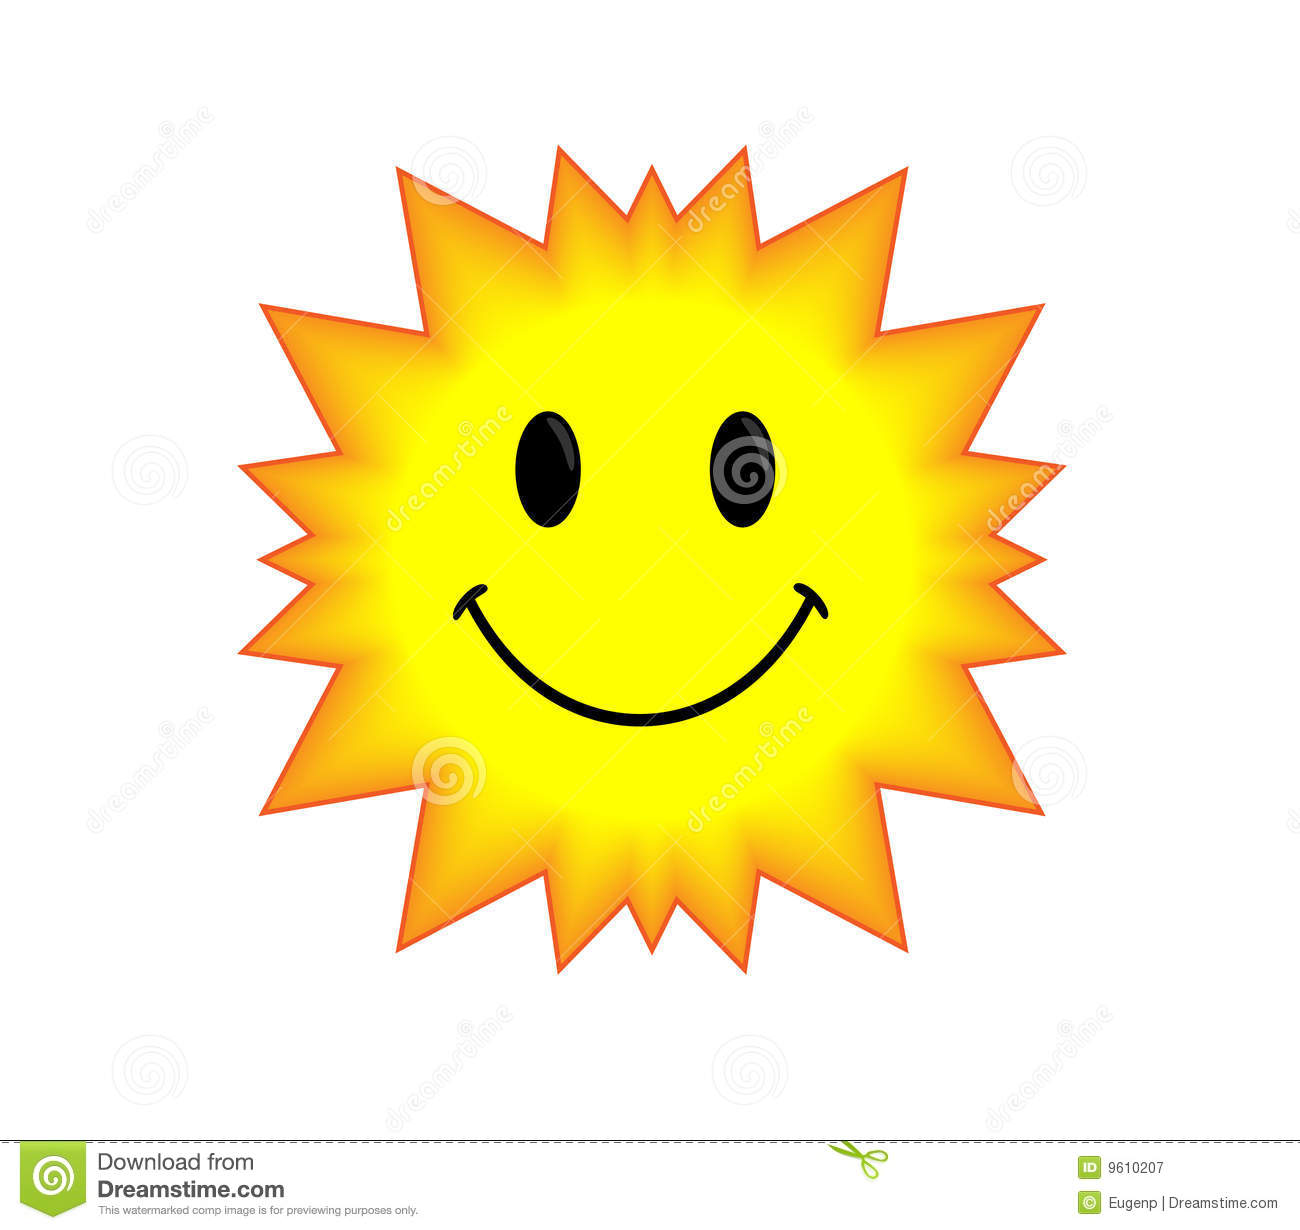 Smiling sun images - Royalty Free Stock Photo Download Smile Sun